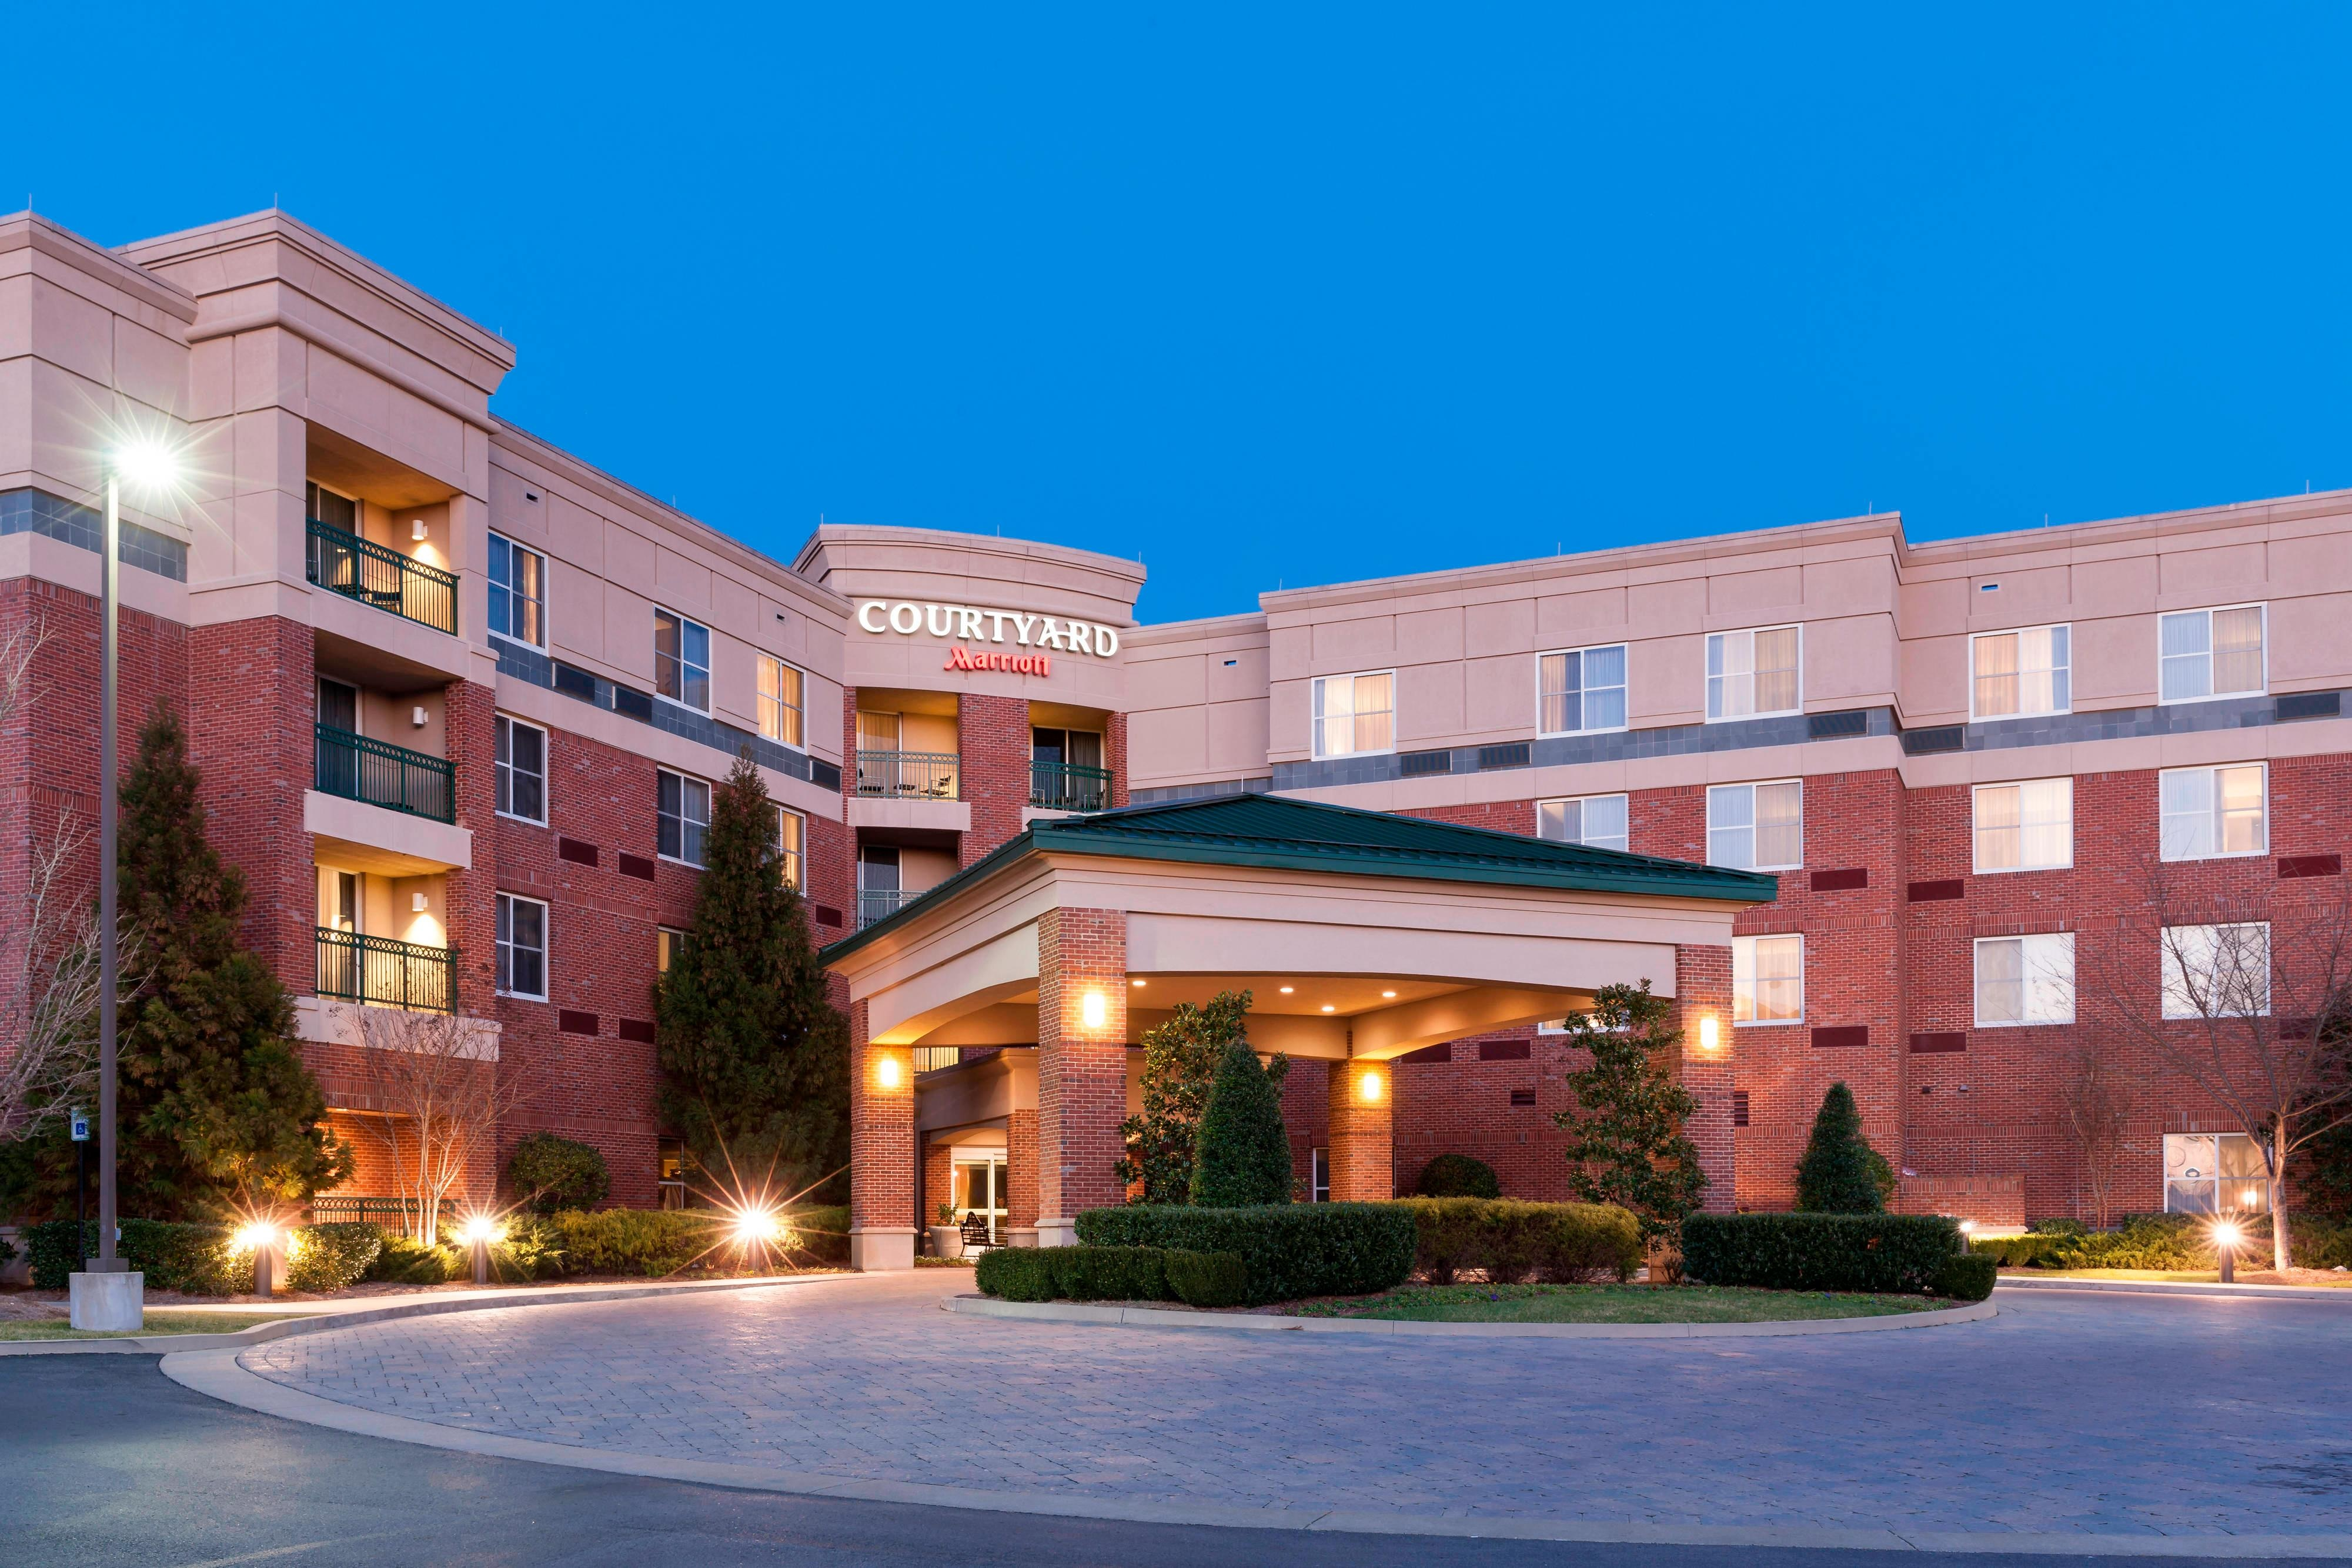 A Hotel Exterior View of Entrance